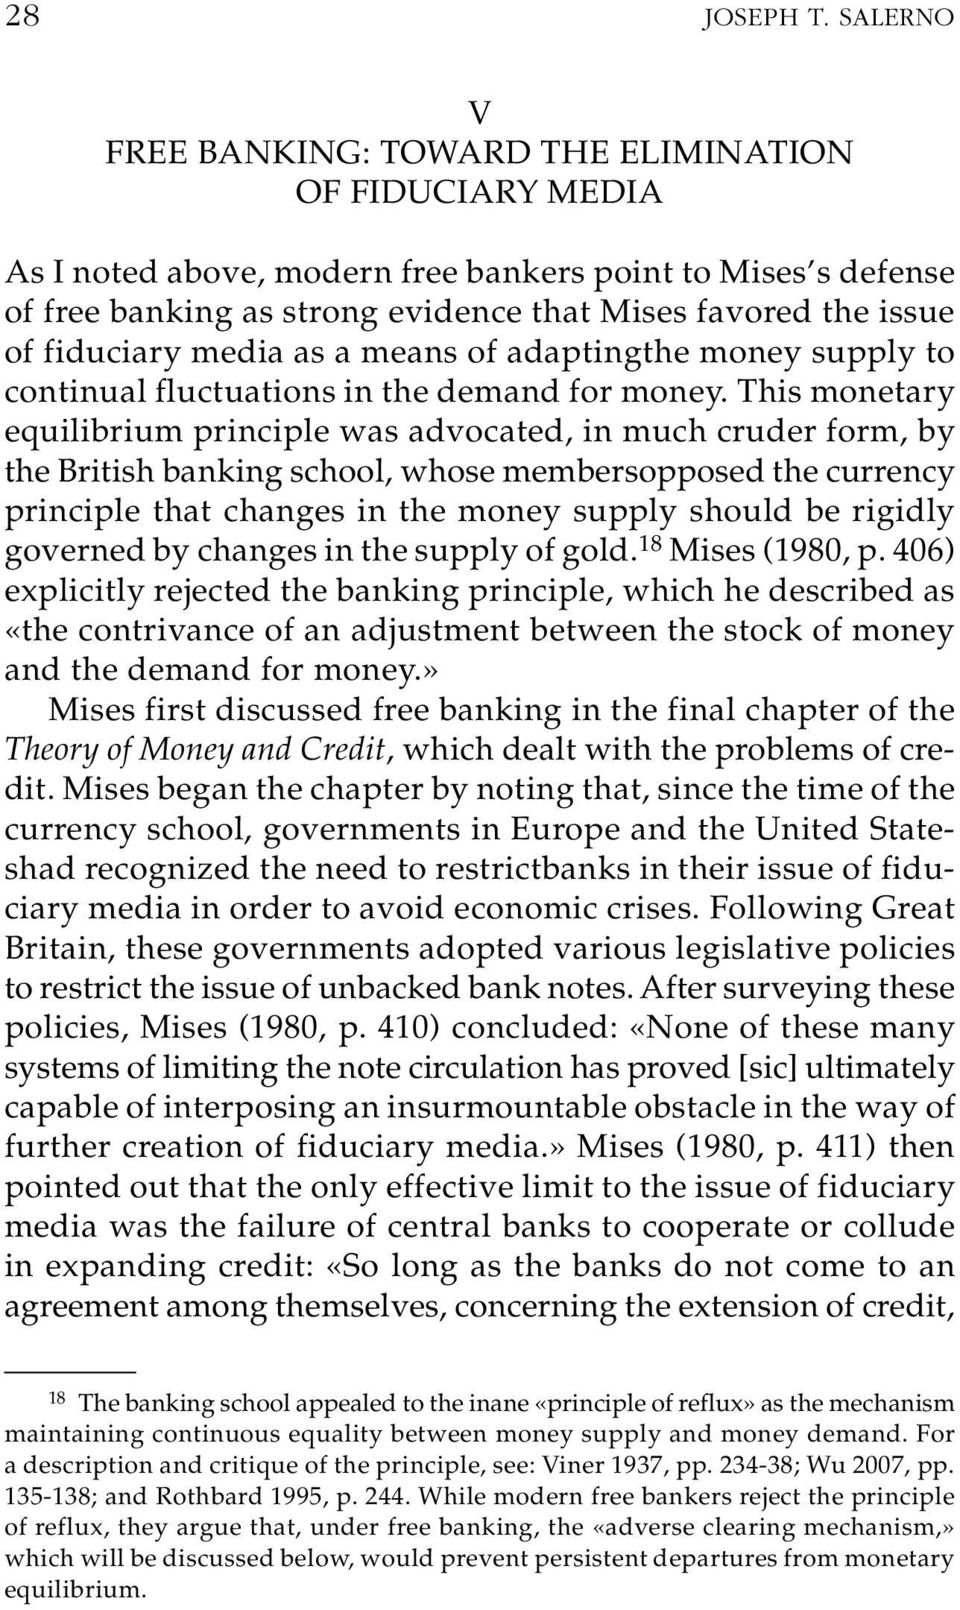 fiduciary media as a means of adaptingthe money supply to continual fluctuations in the demand for money.